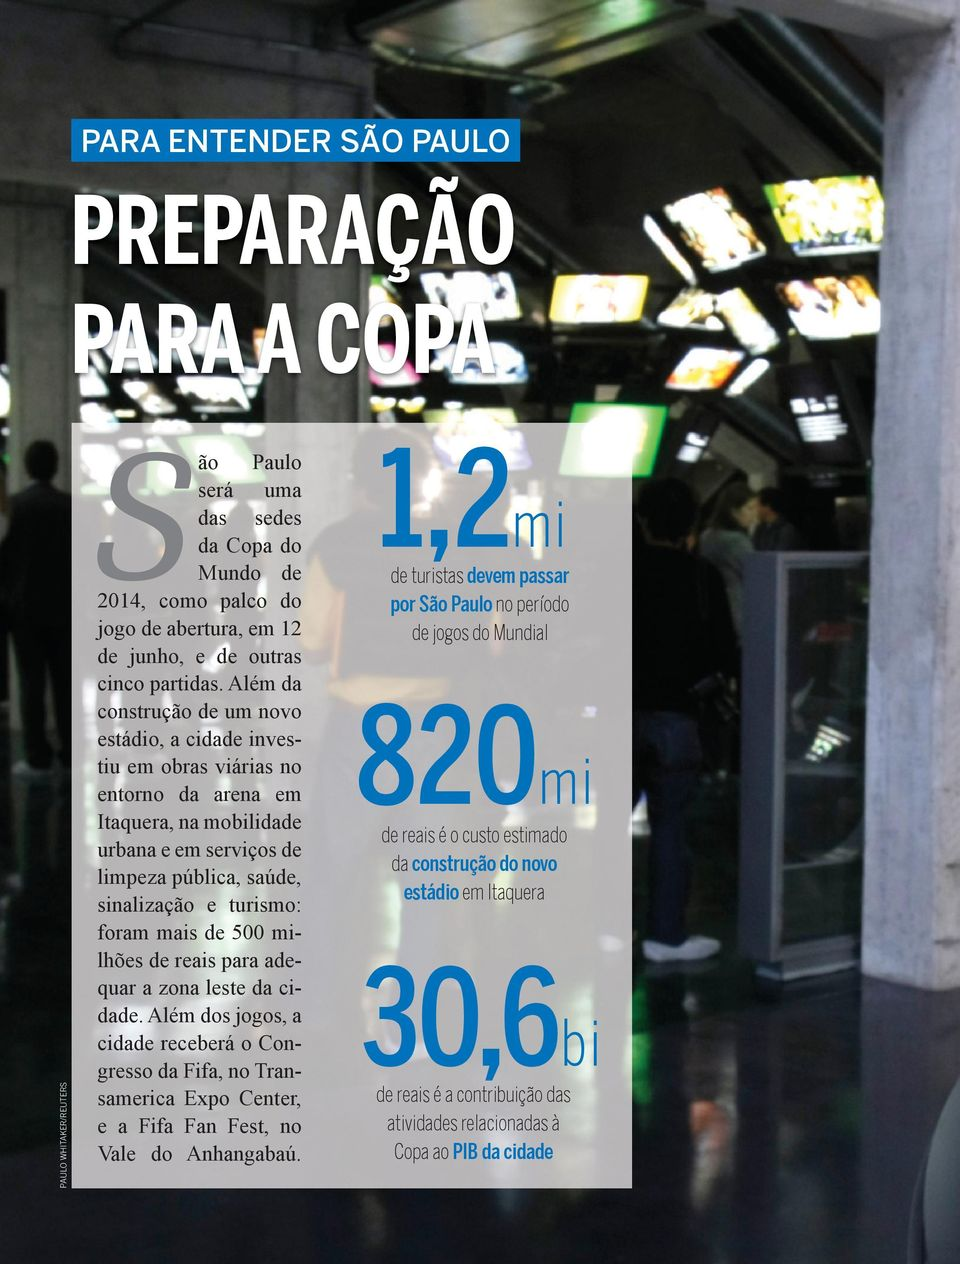 mais de 500 milhões de reais para adequar a zona leste da cidade. Além dos jogos, a cidade receberá o Congresso da Fifa, no Transamerica Expo Center, e a Fifa Fan Fest, no Vale do Anhangabaú.